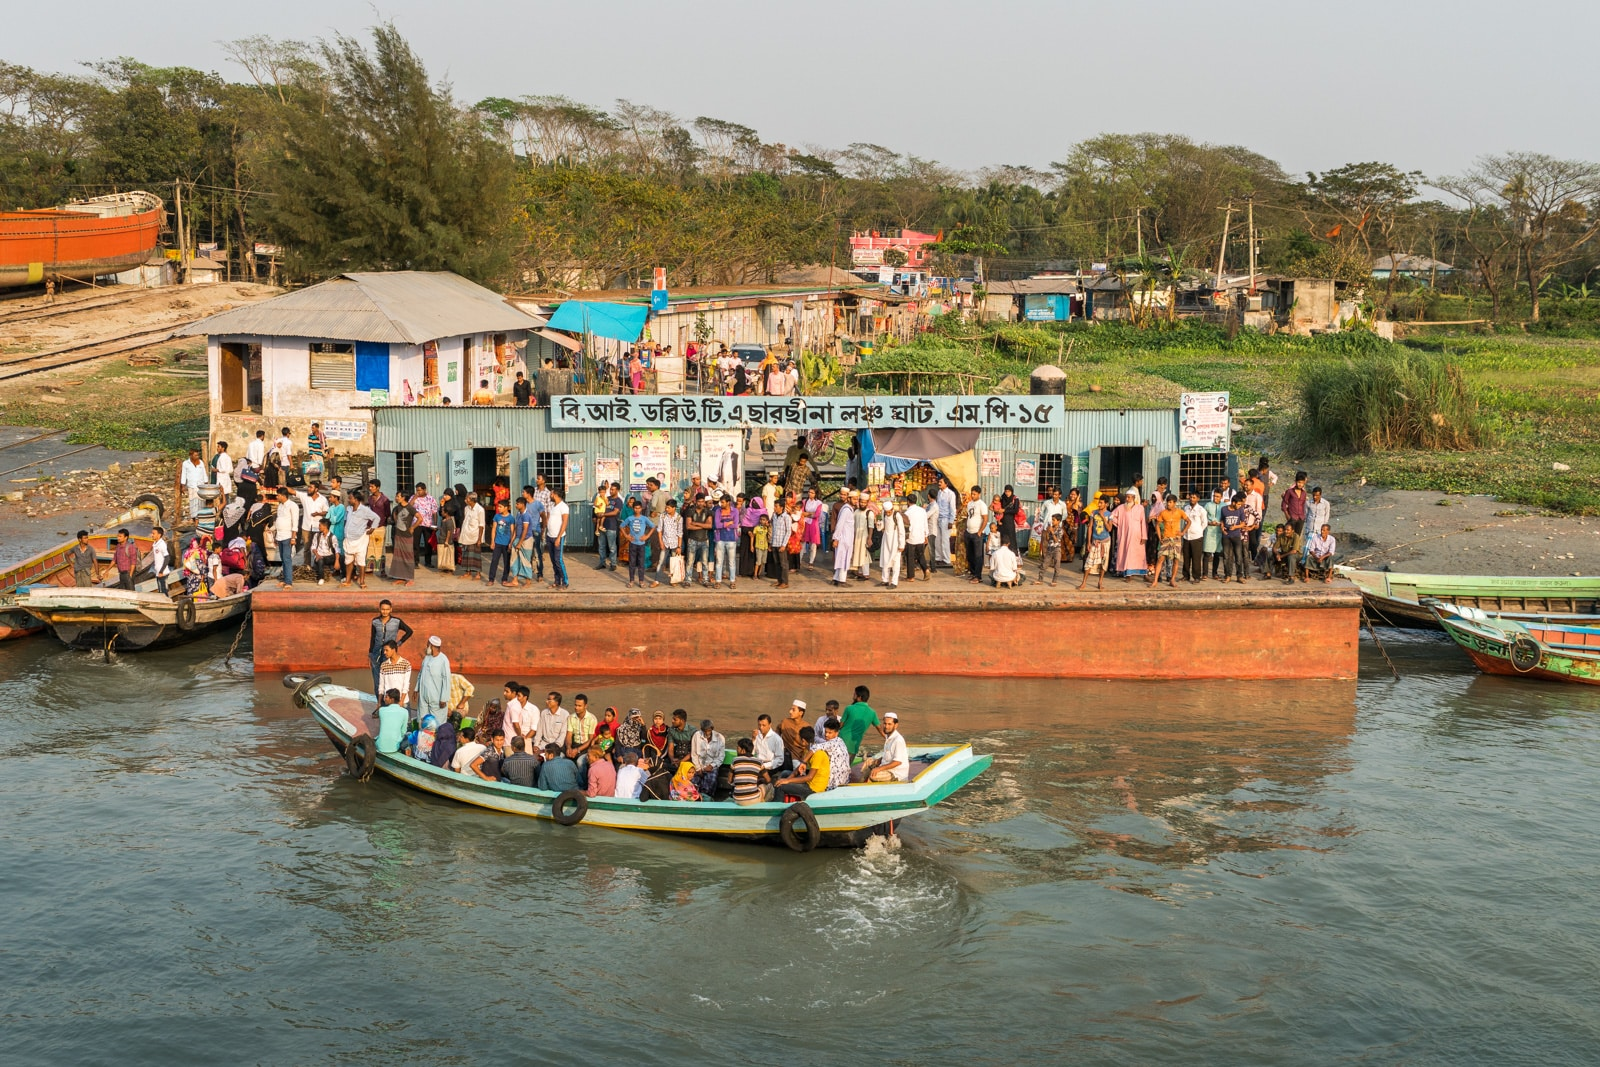 How to take a launch boat from Khulna to Dhaka via Hularhat, Bangladesh - Busy launch terminal on the river - Lost With Purpose travel blog